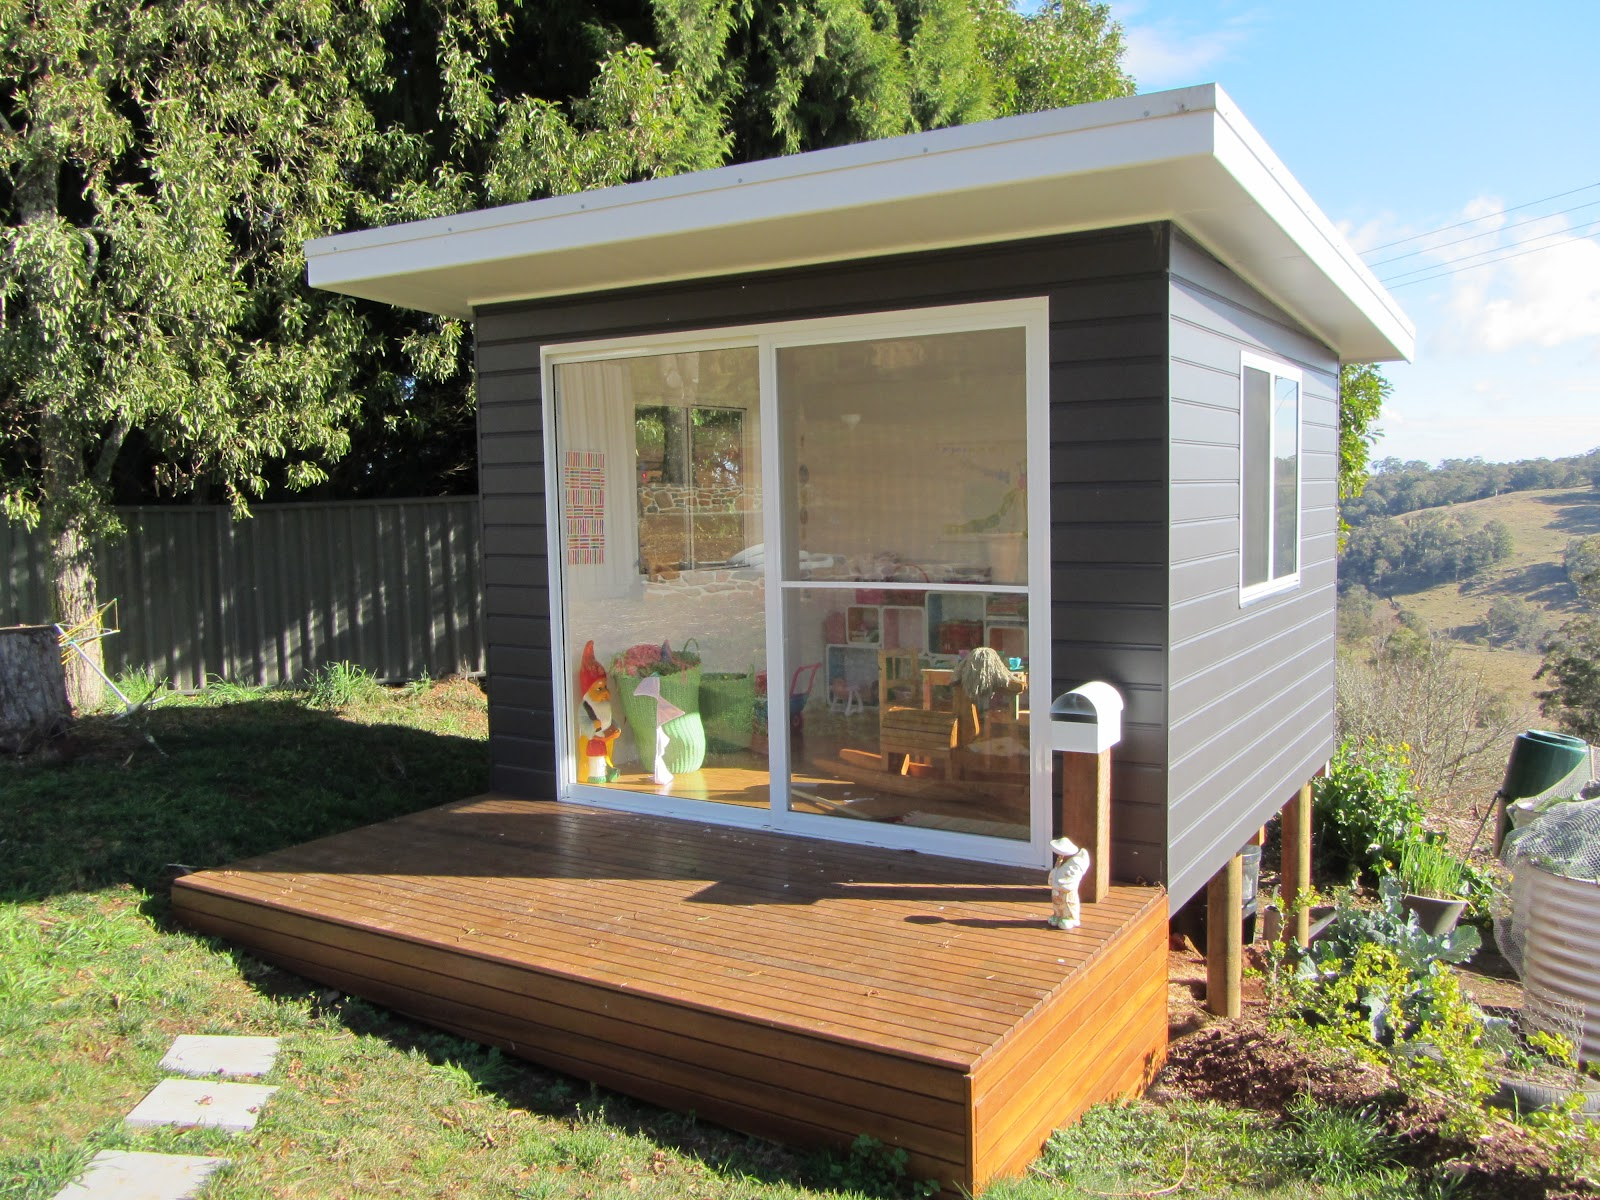 Thom haus handmade a children s cubby house now and a room for grown ups later Make home design